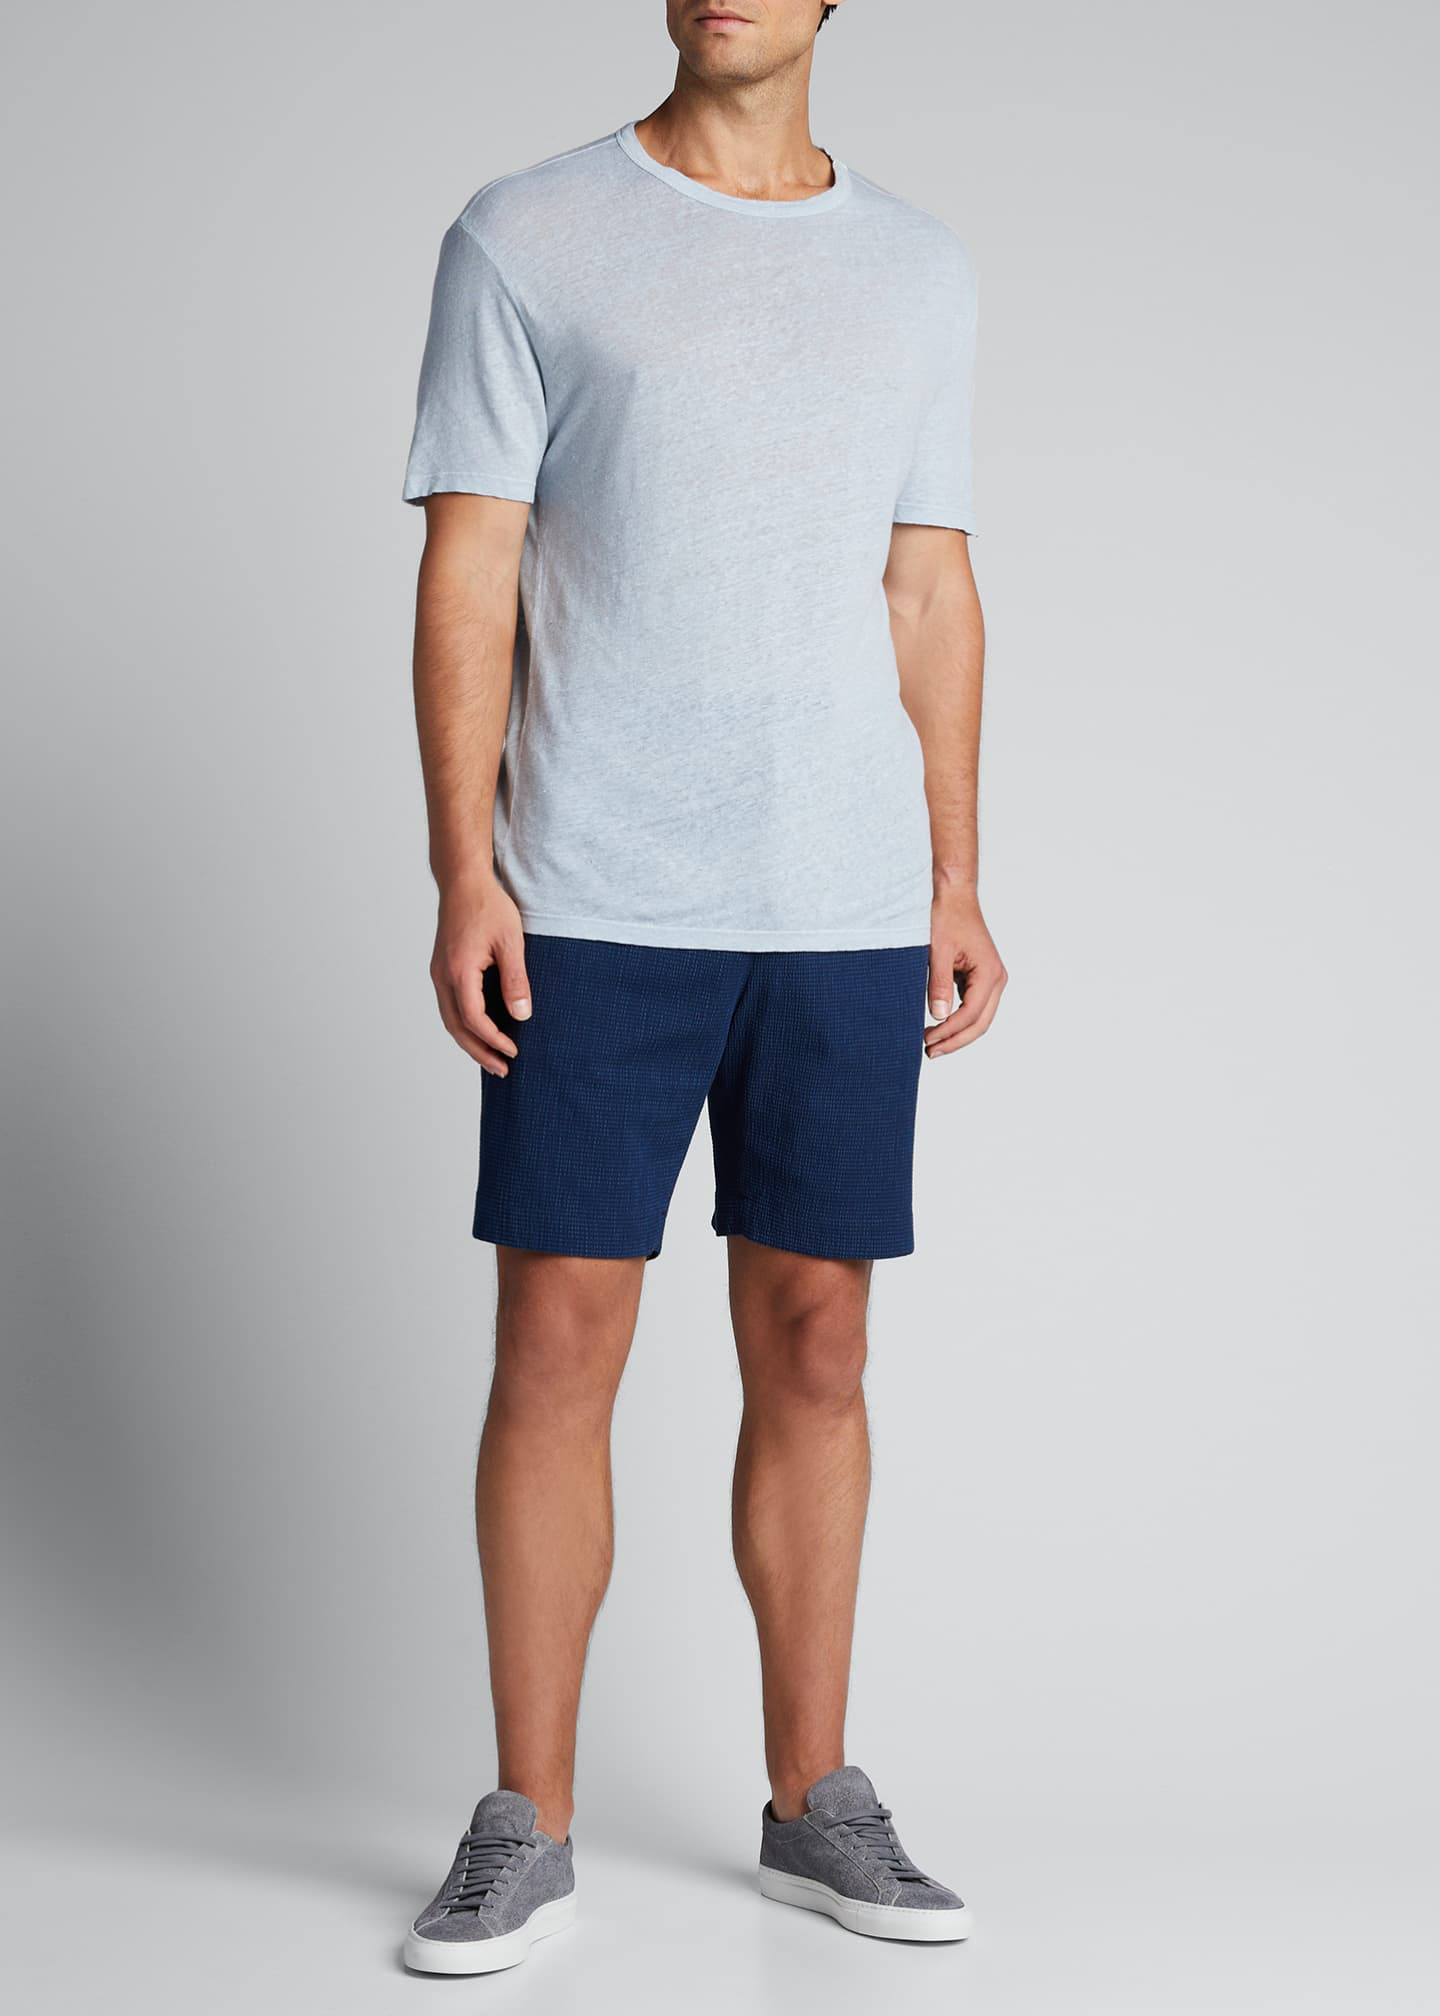 Men's Garment-Dyed Linen Crewneck Tee